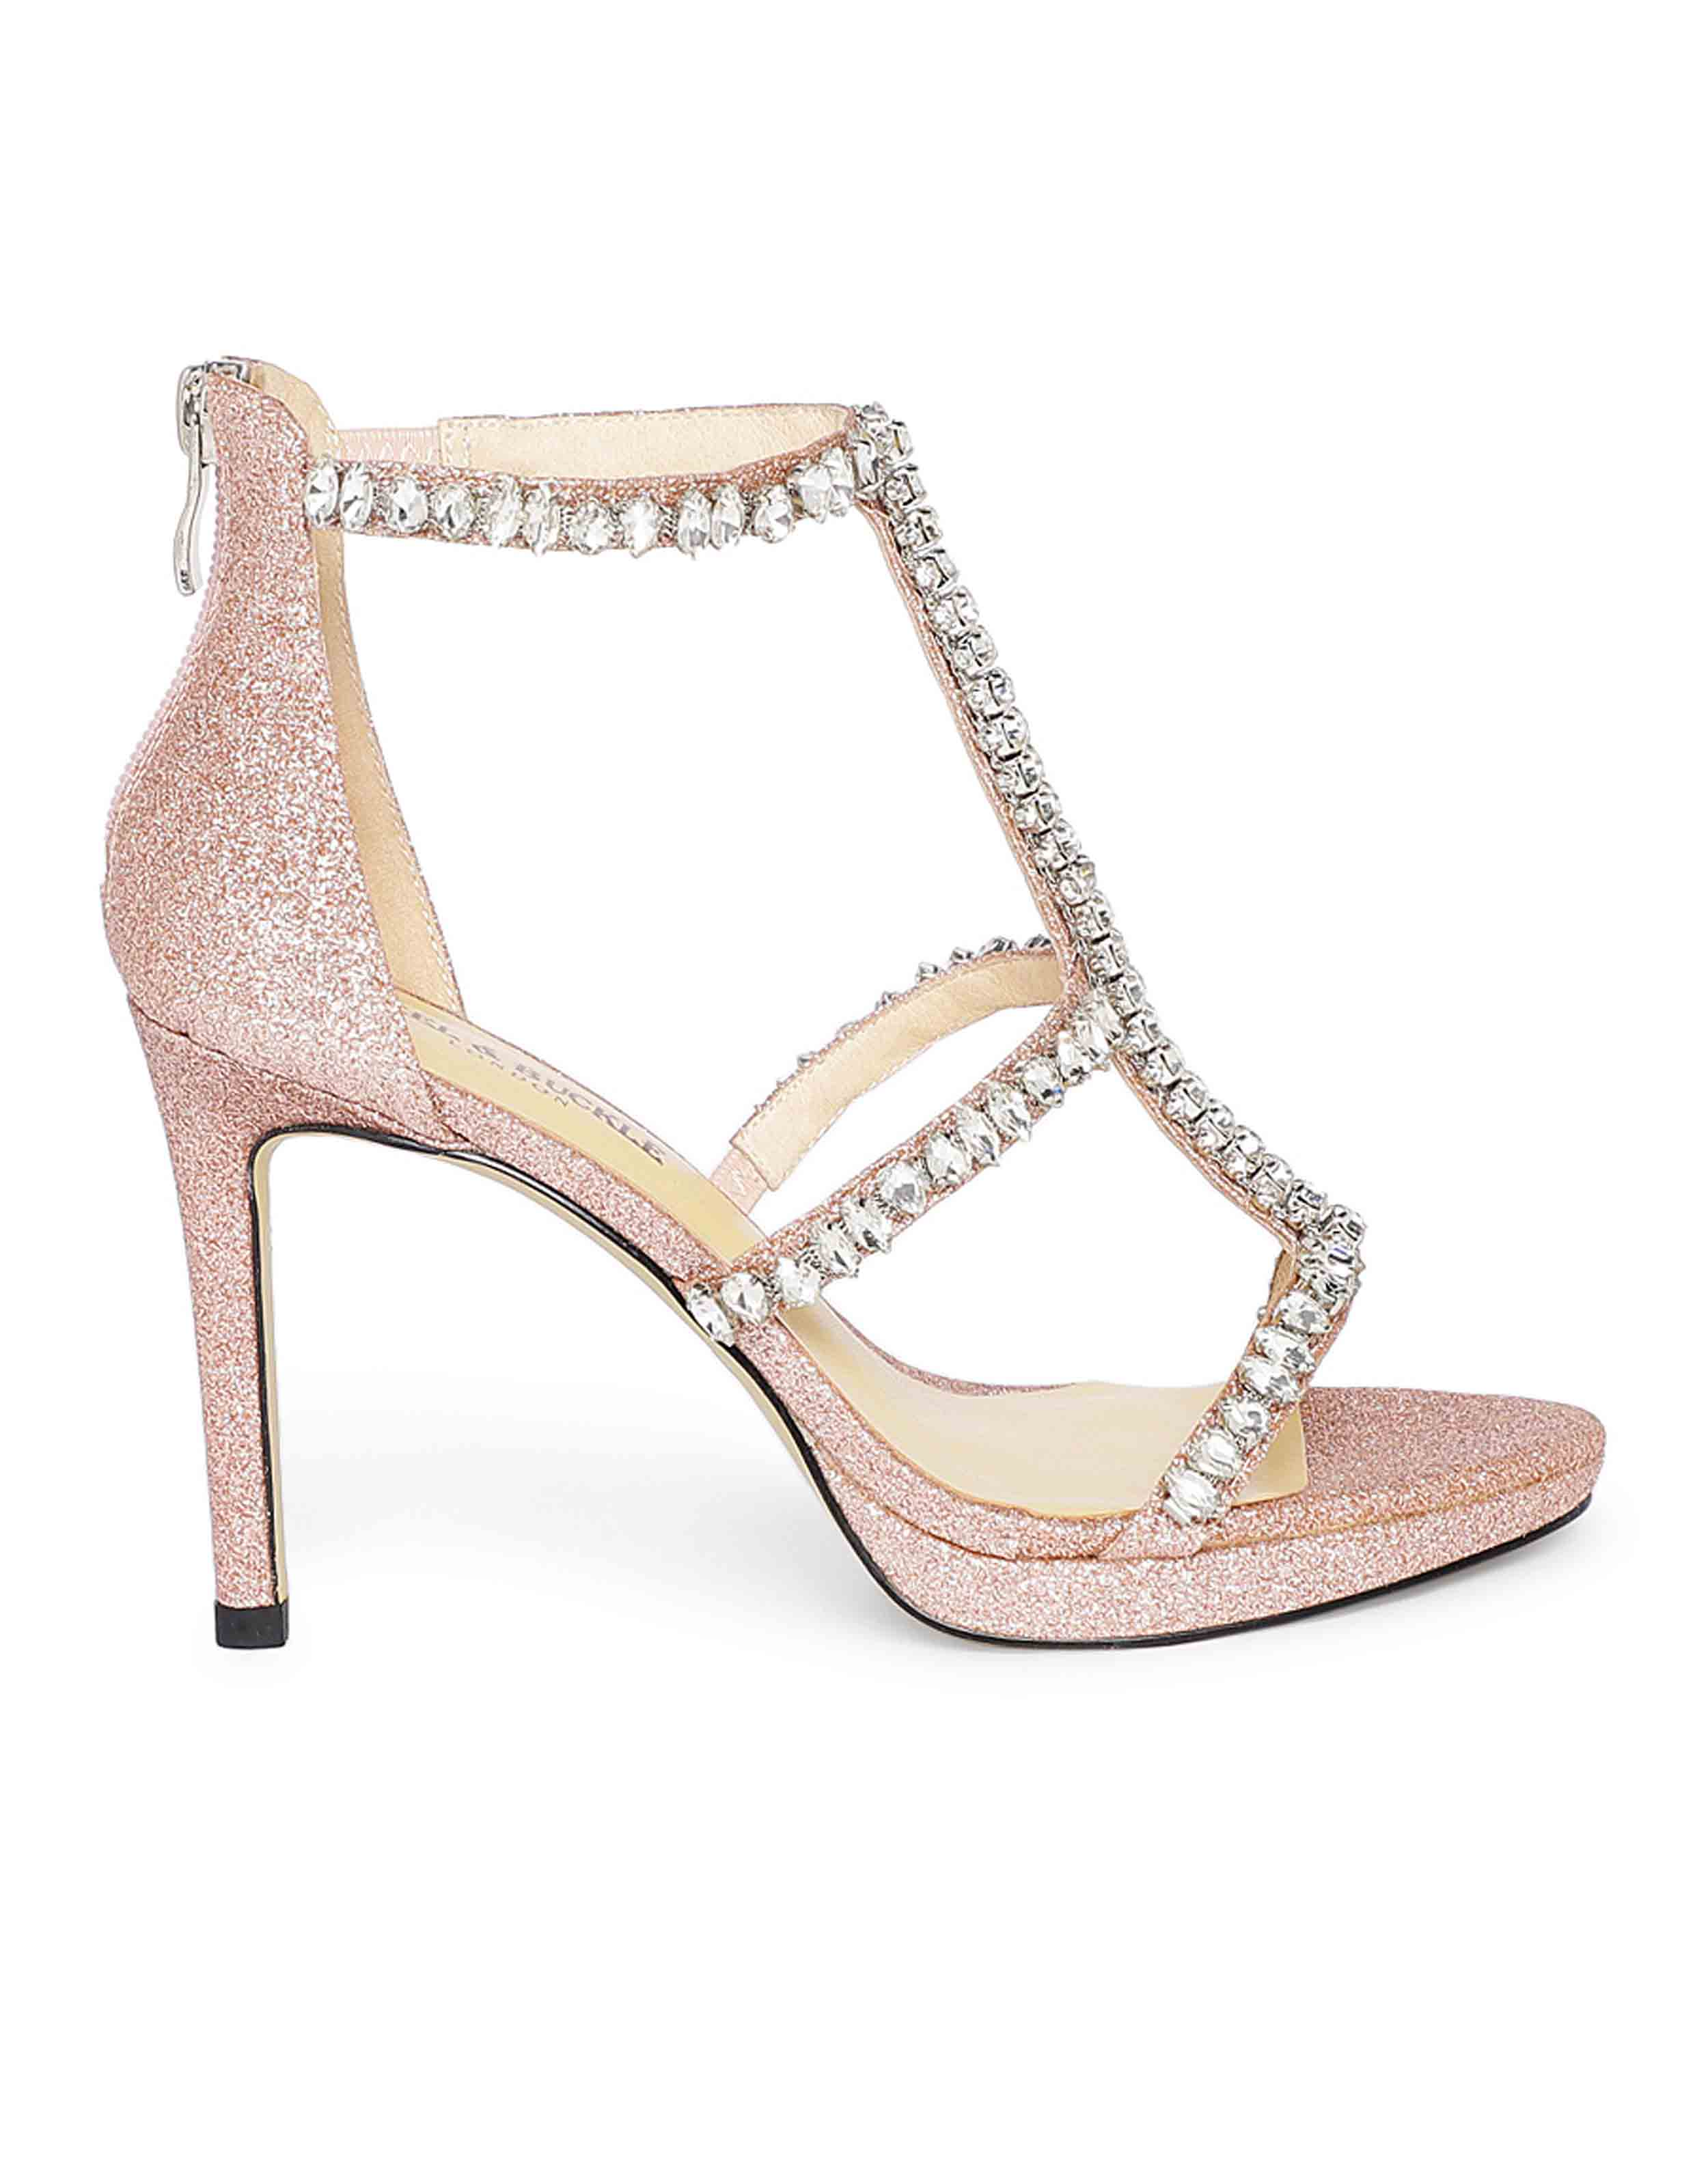 Shimmery Sandals1